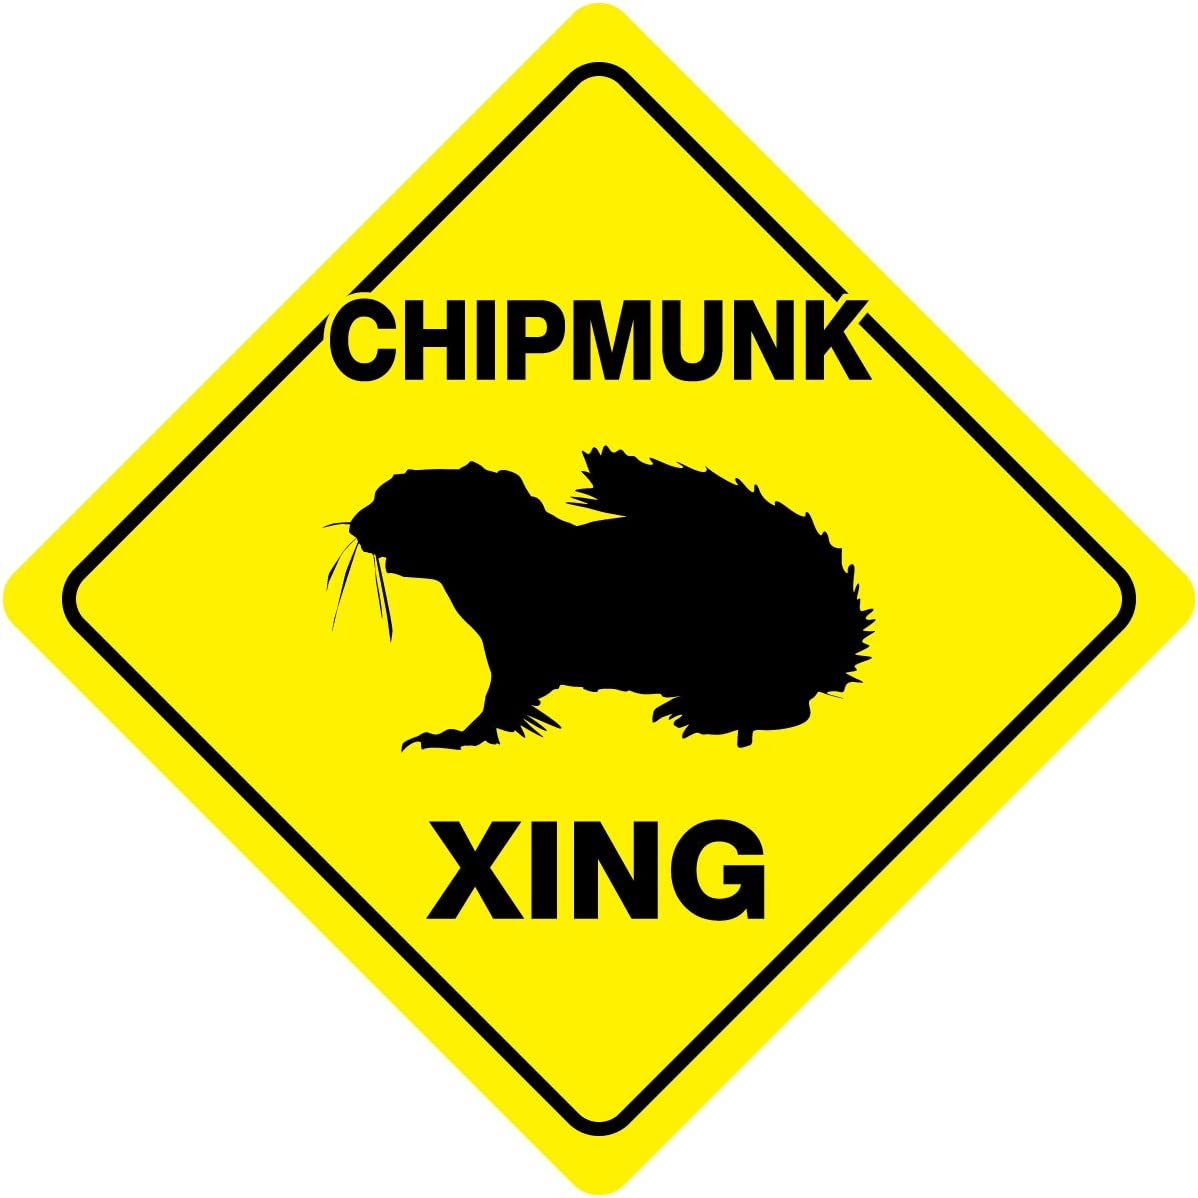 Chipmunk Crossing Xing Sign New Made in USA